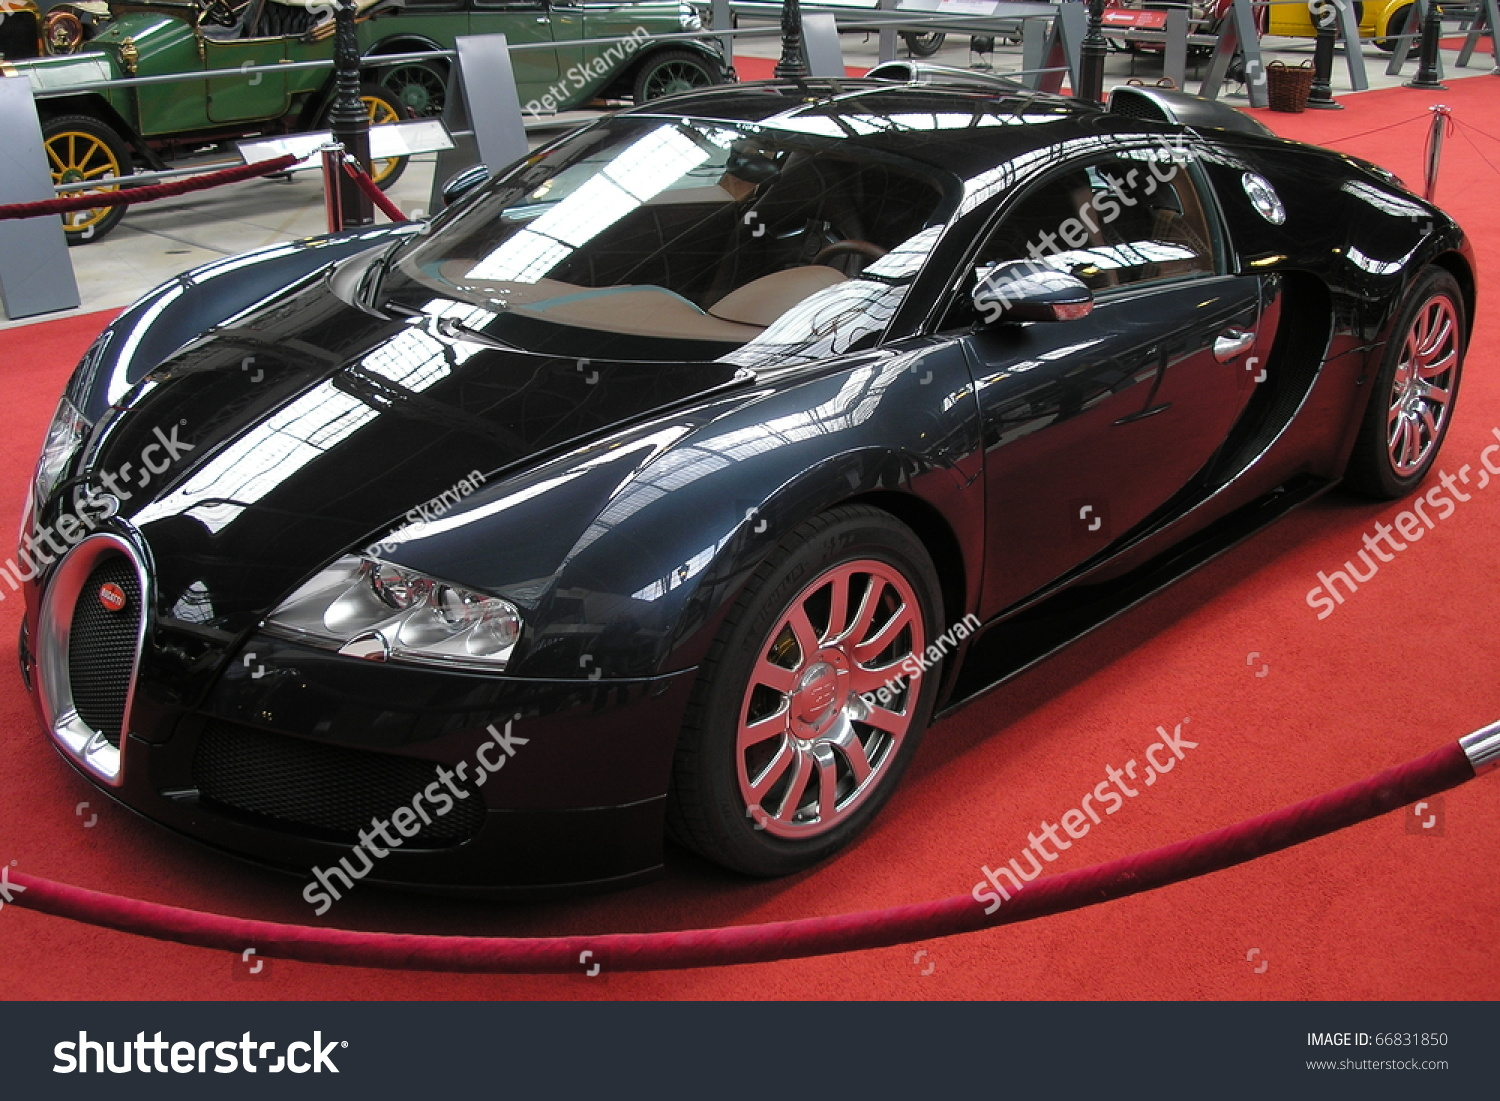 brussels belgium may 10 bugatti veyron stands on red carpet in autoworld museum main passage. Black Bedroom Furniture Sets. Home Design Ideas